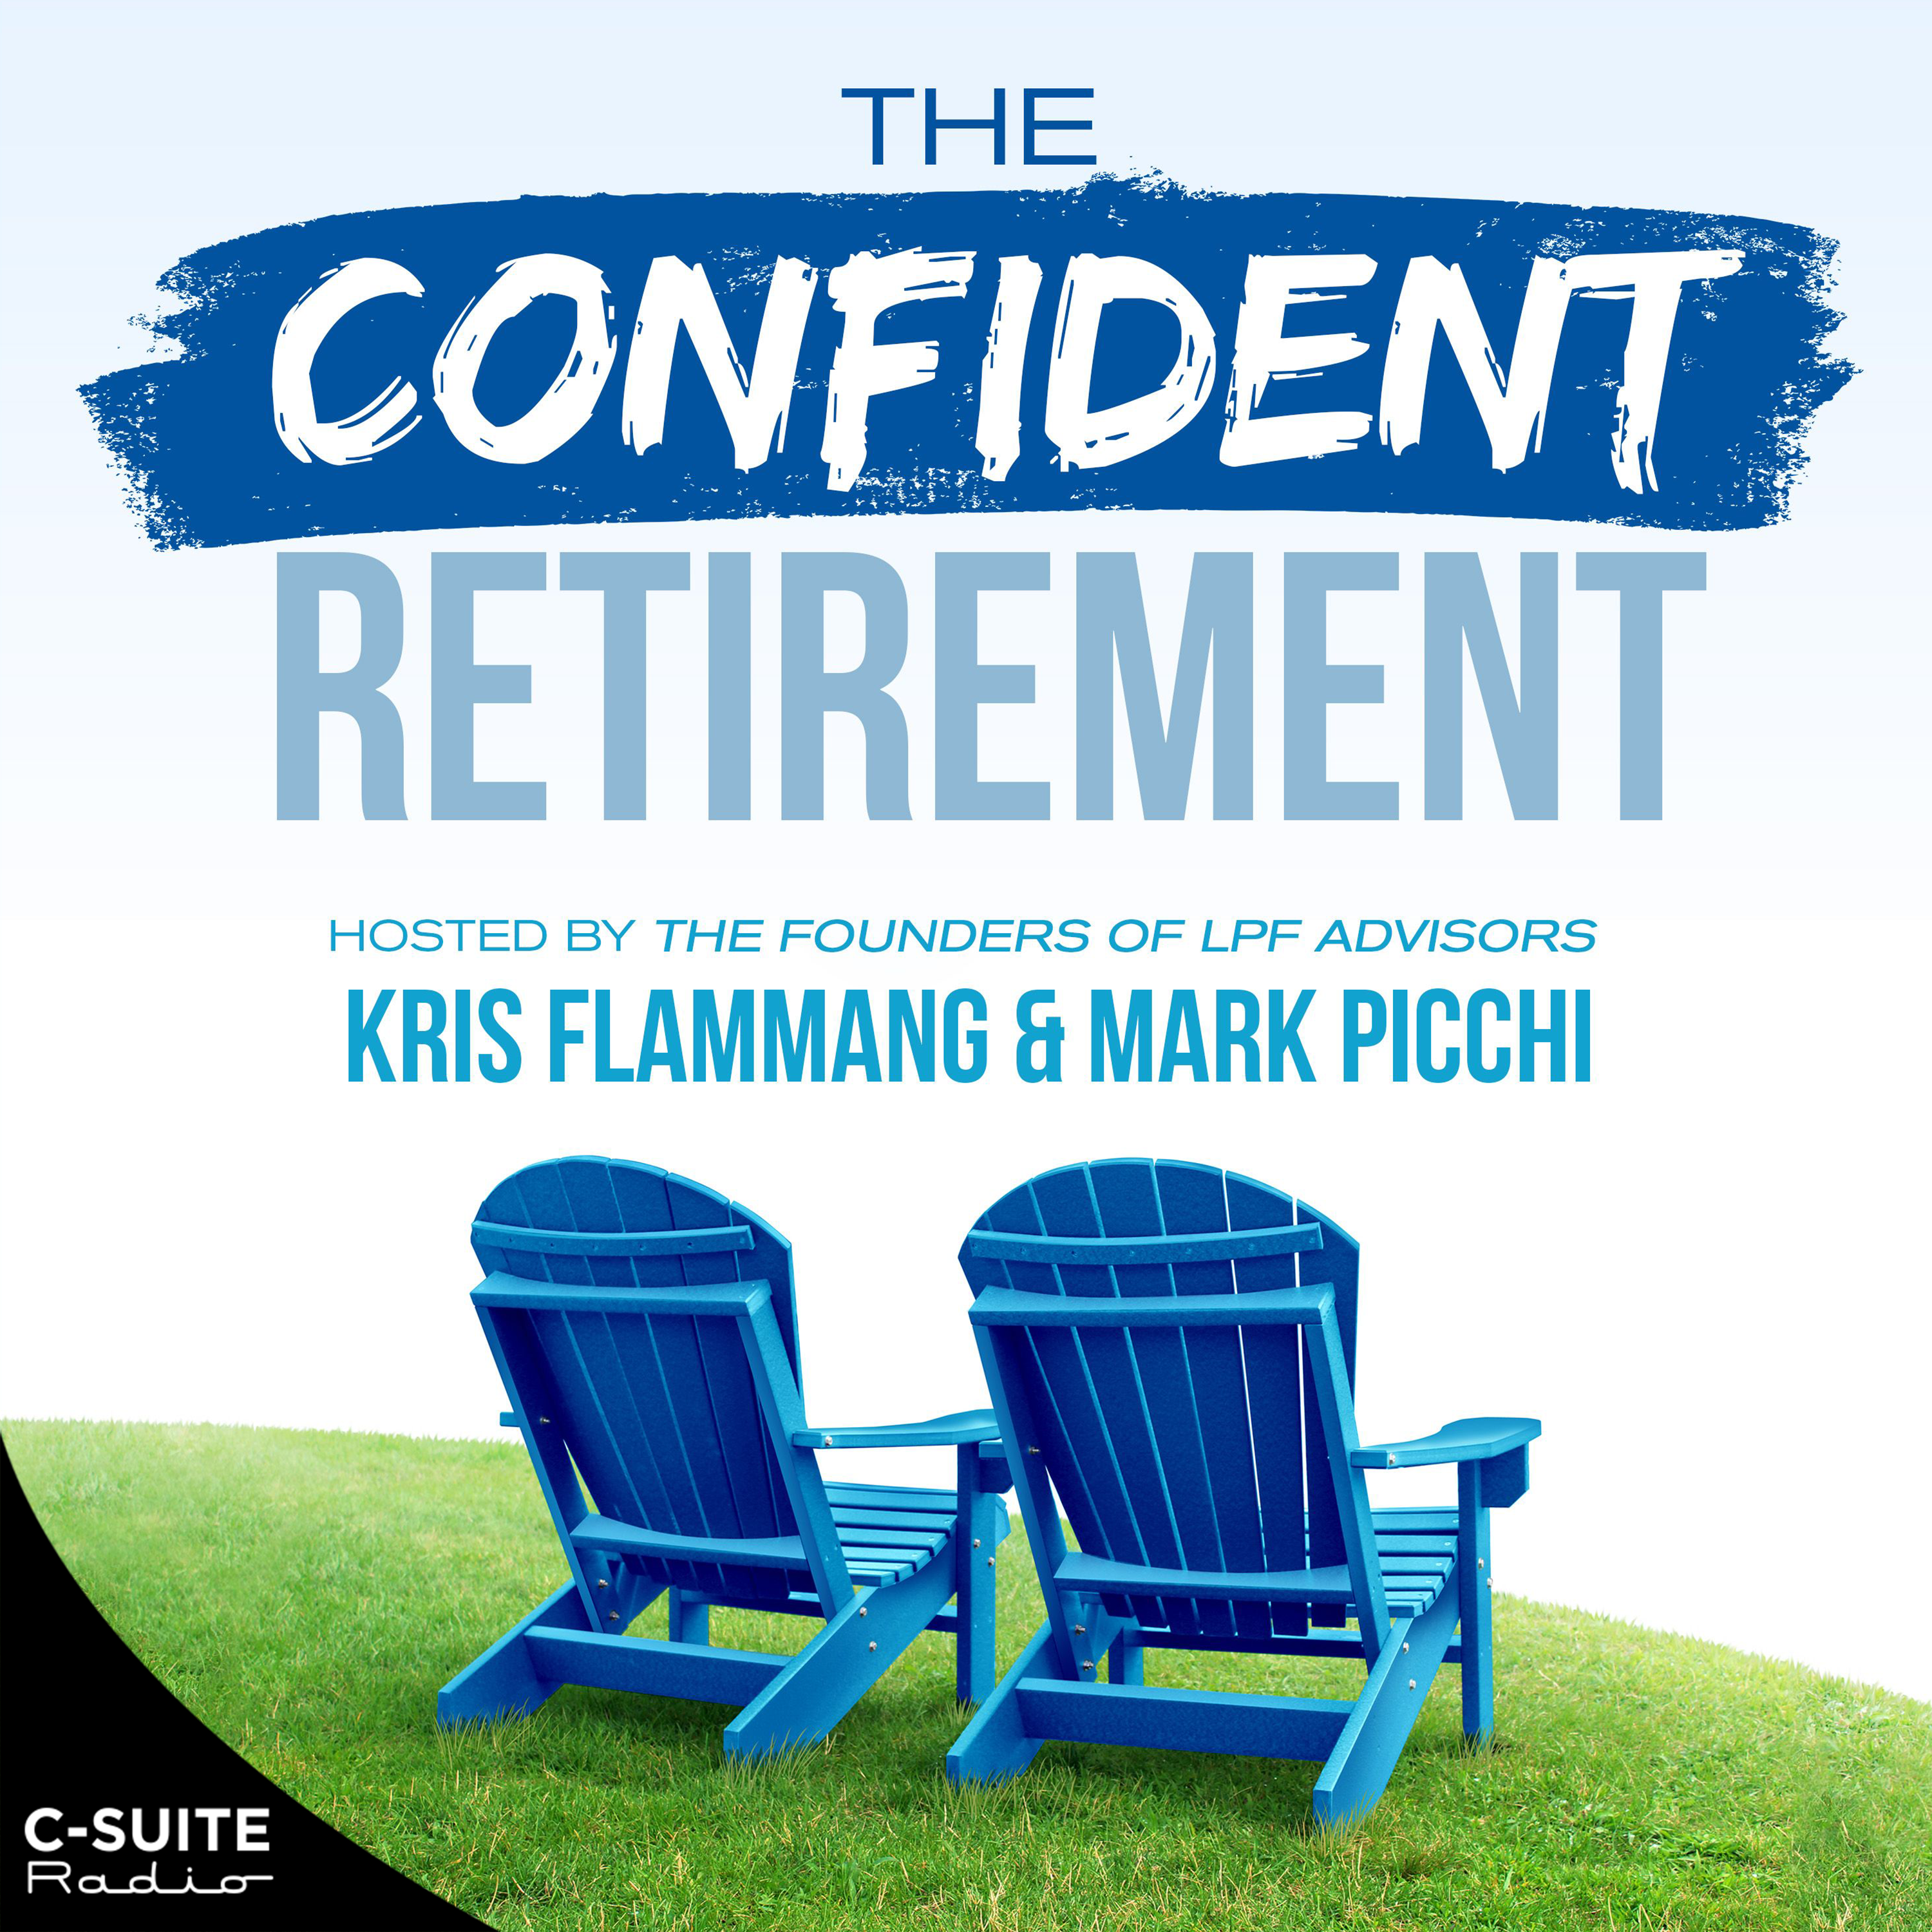 The Confident Retirement